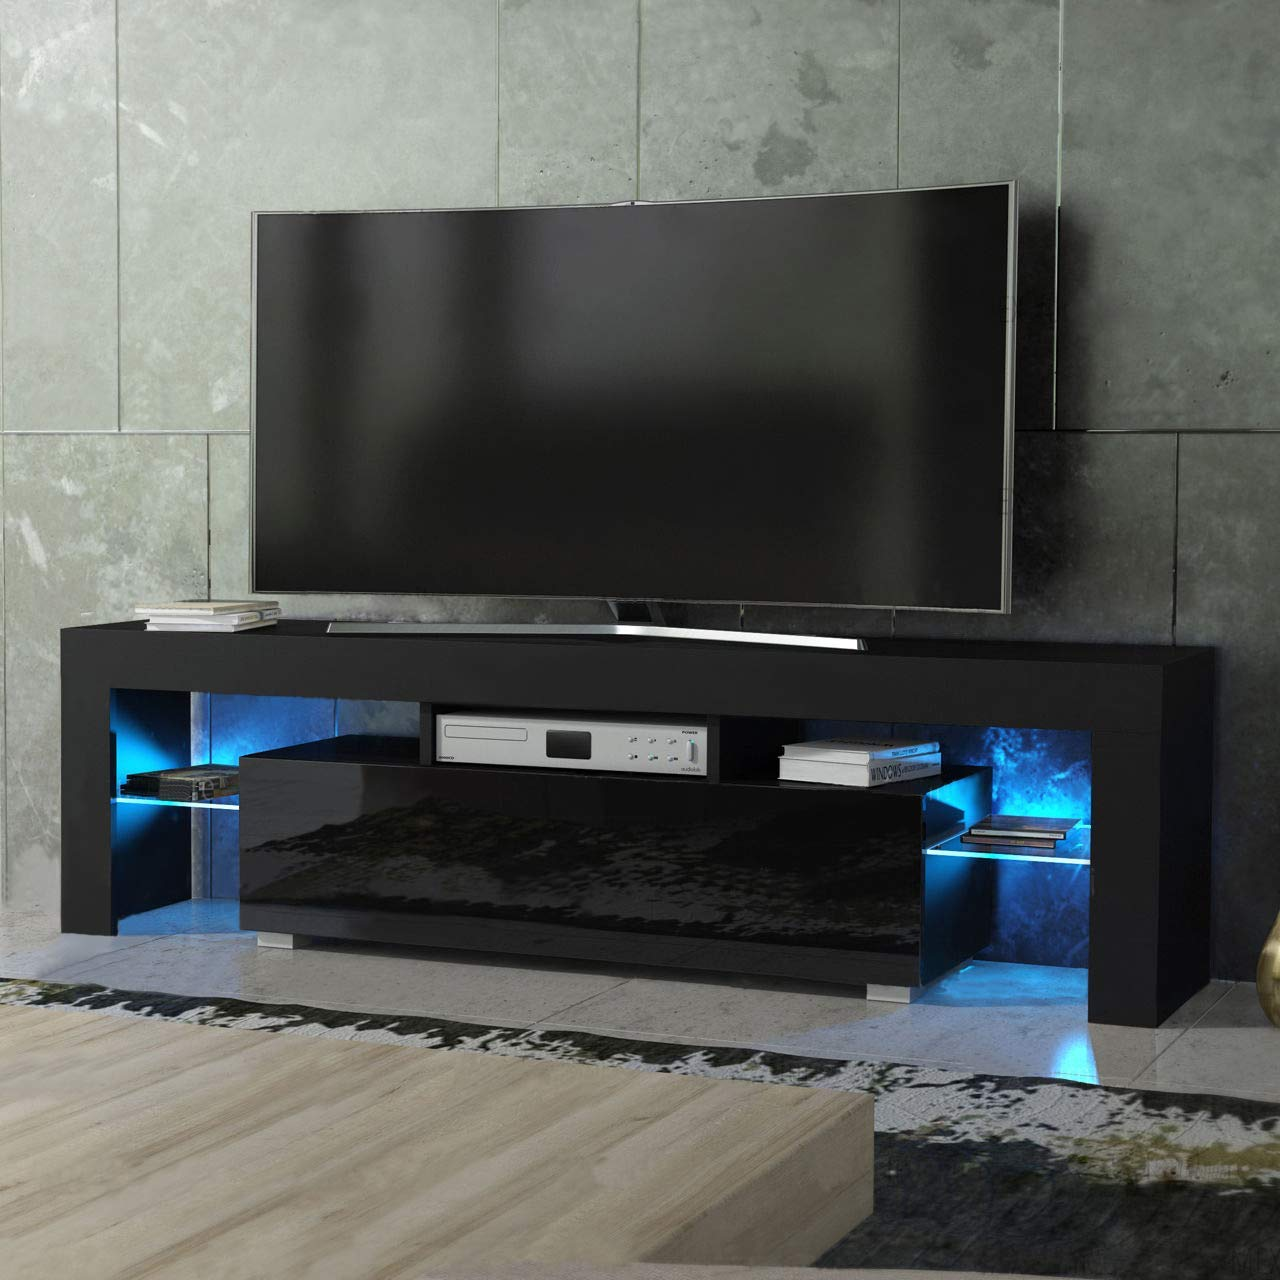 thumbnail 14 - Modern TV Stand Cabinet w/ LED Light for 65 Inch TV Media Storage Console Table